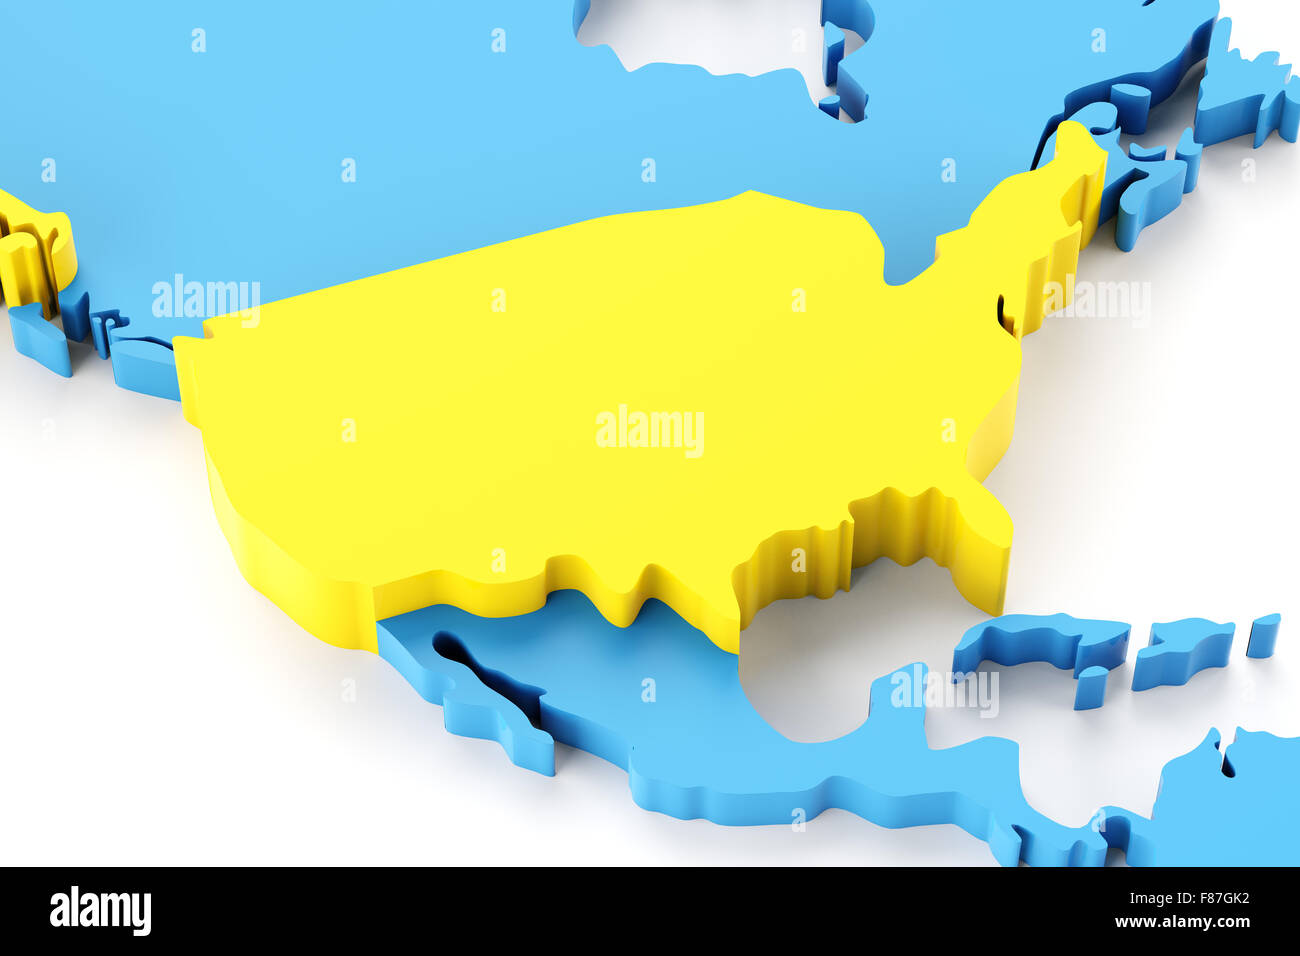 Map of north america with usa highlighted stock photo 91135830 alamy map of north america with usa highlighted gumiabroncs Images